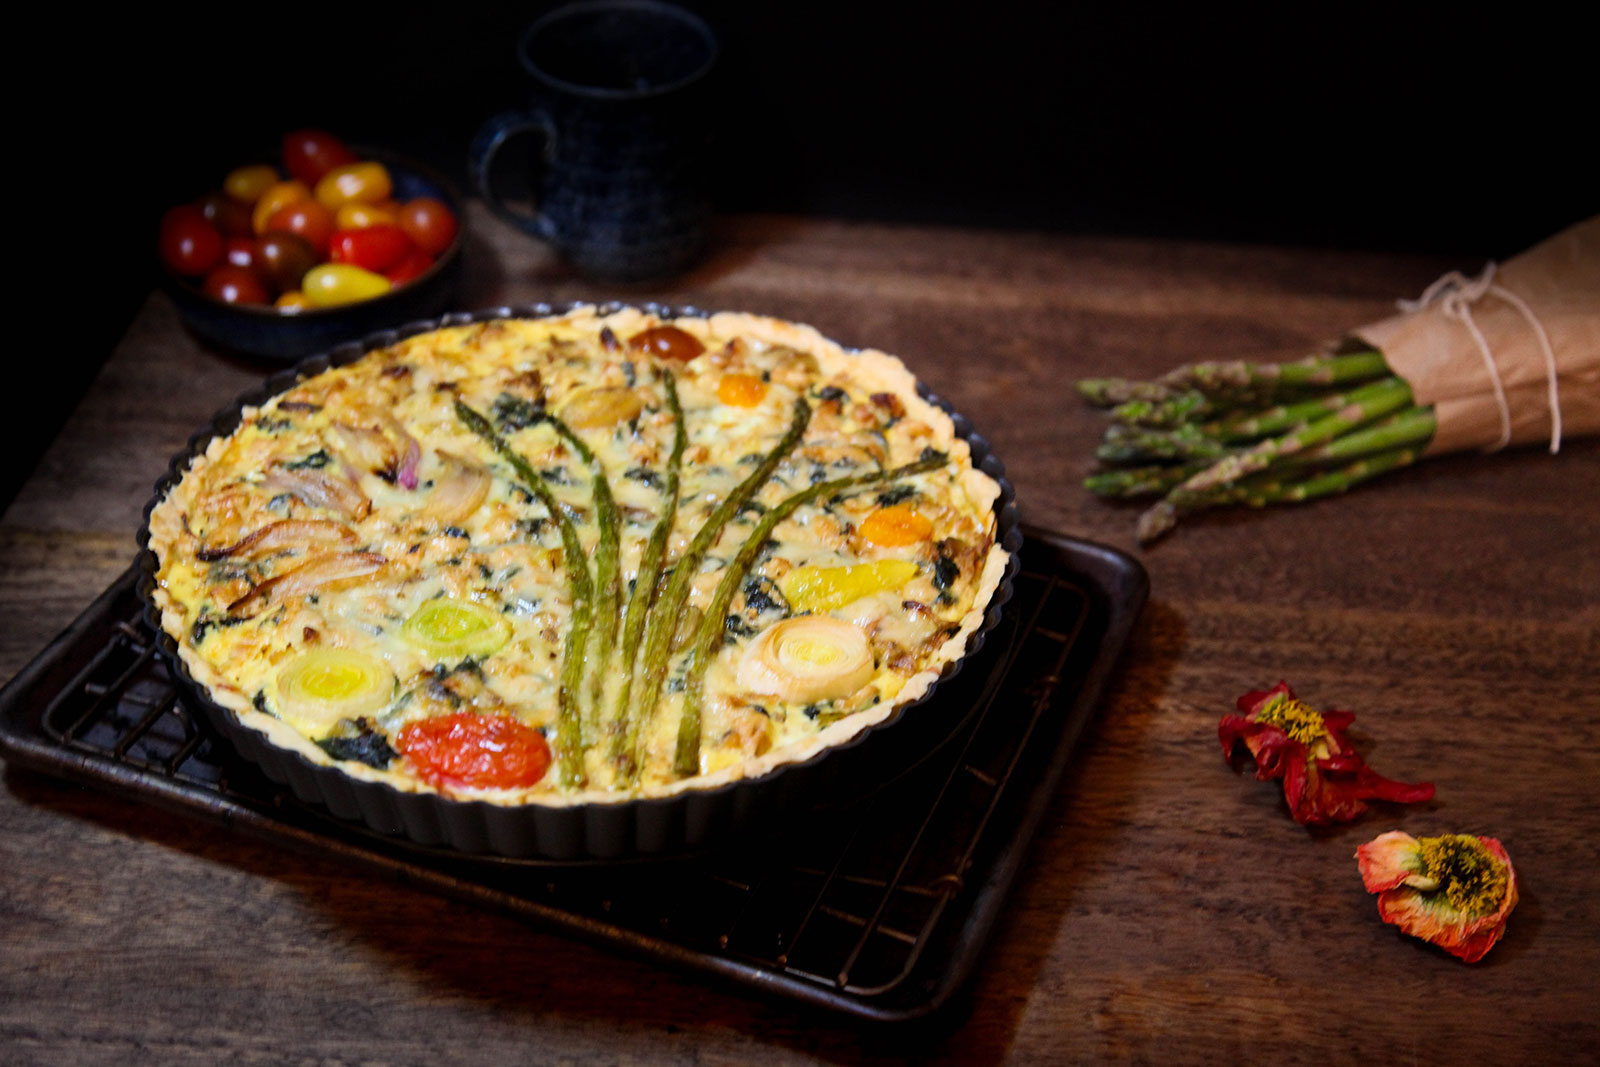 Quiche with Leeks, Asparagus, Baby Spinach, and Shredded Chicken